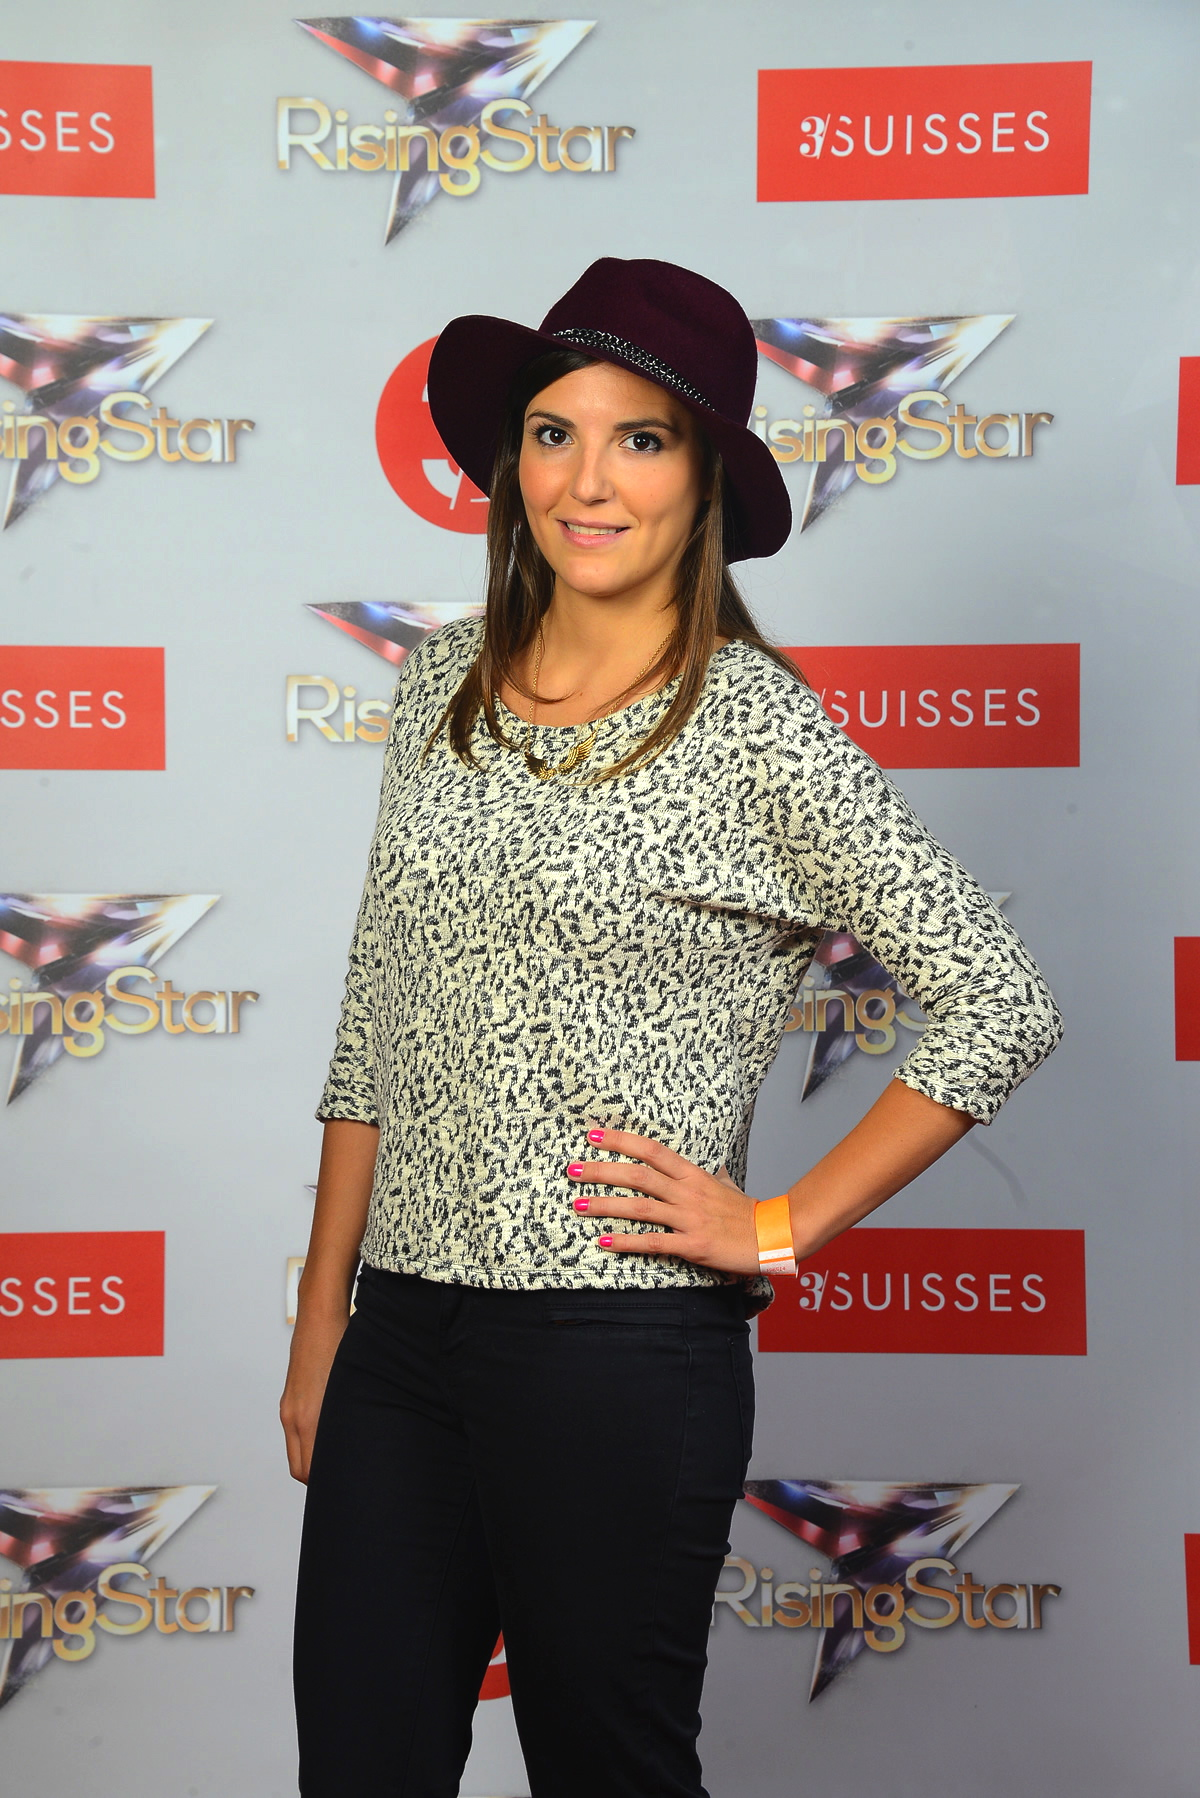 risingstar 3 suisses